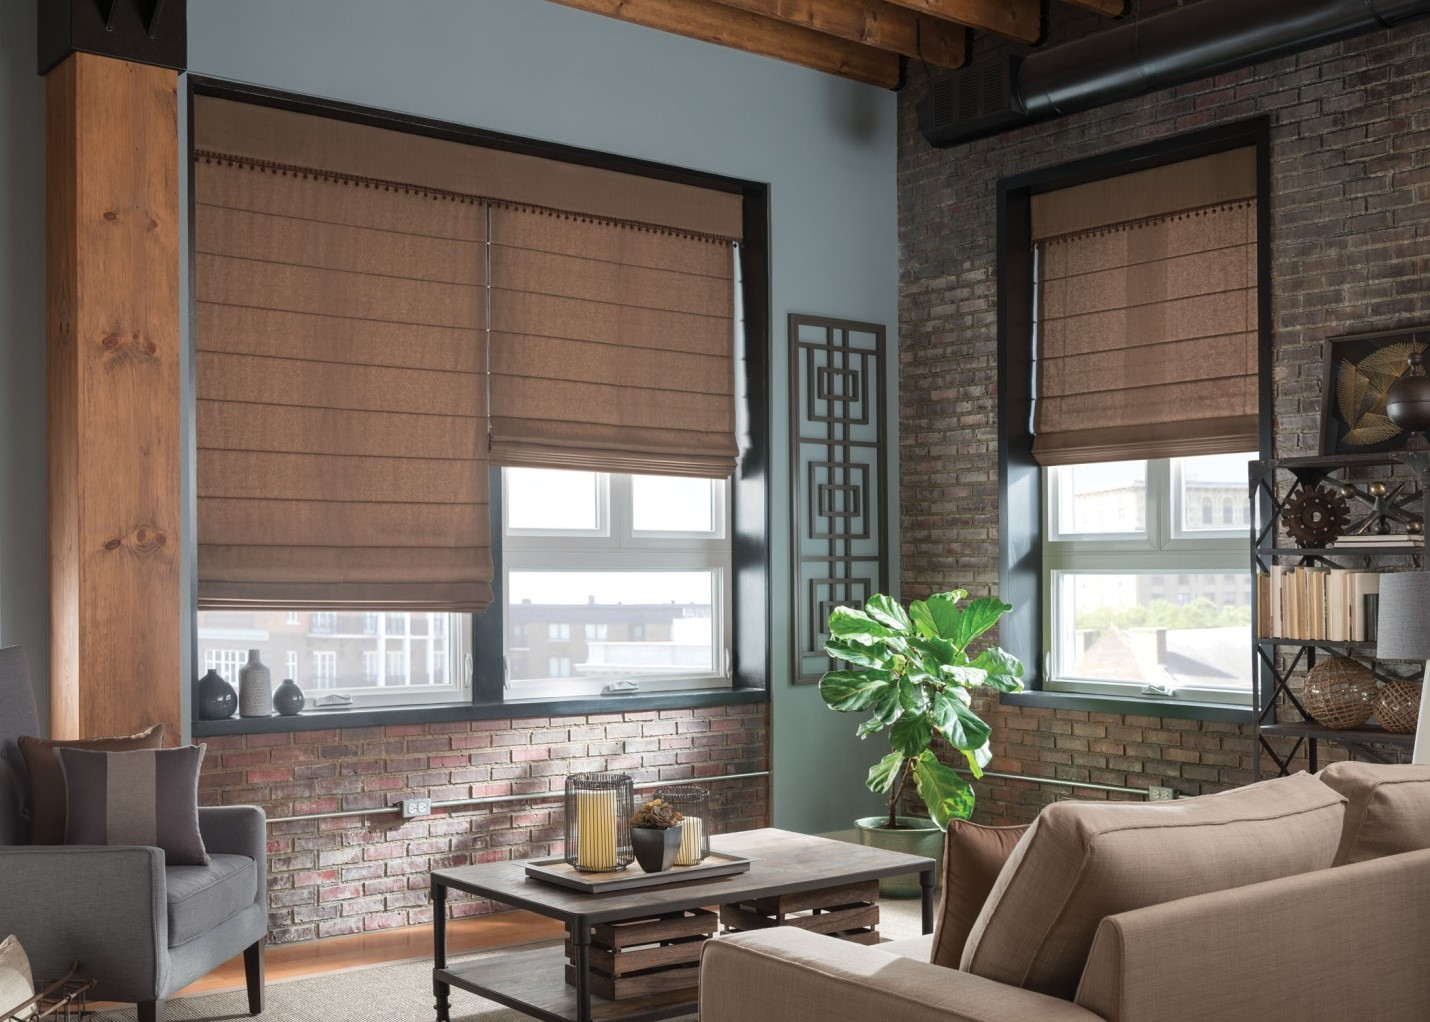 How to get smart window shades with in your budget for Smart window shades